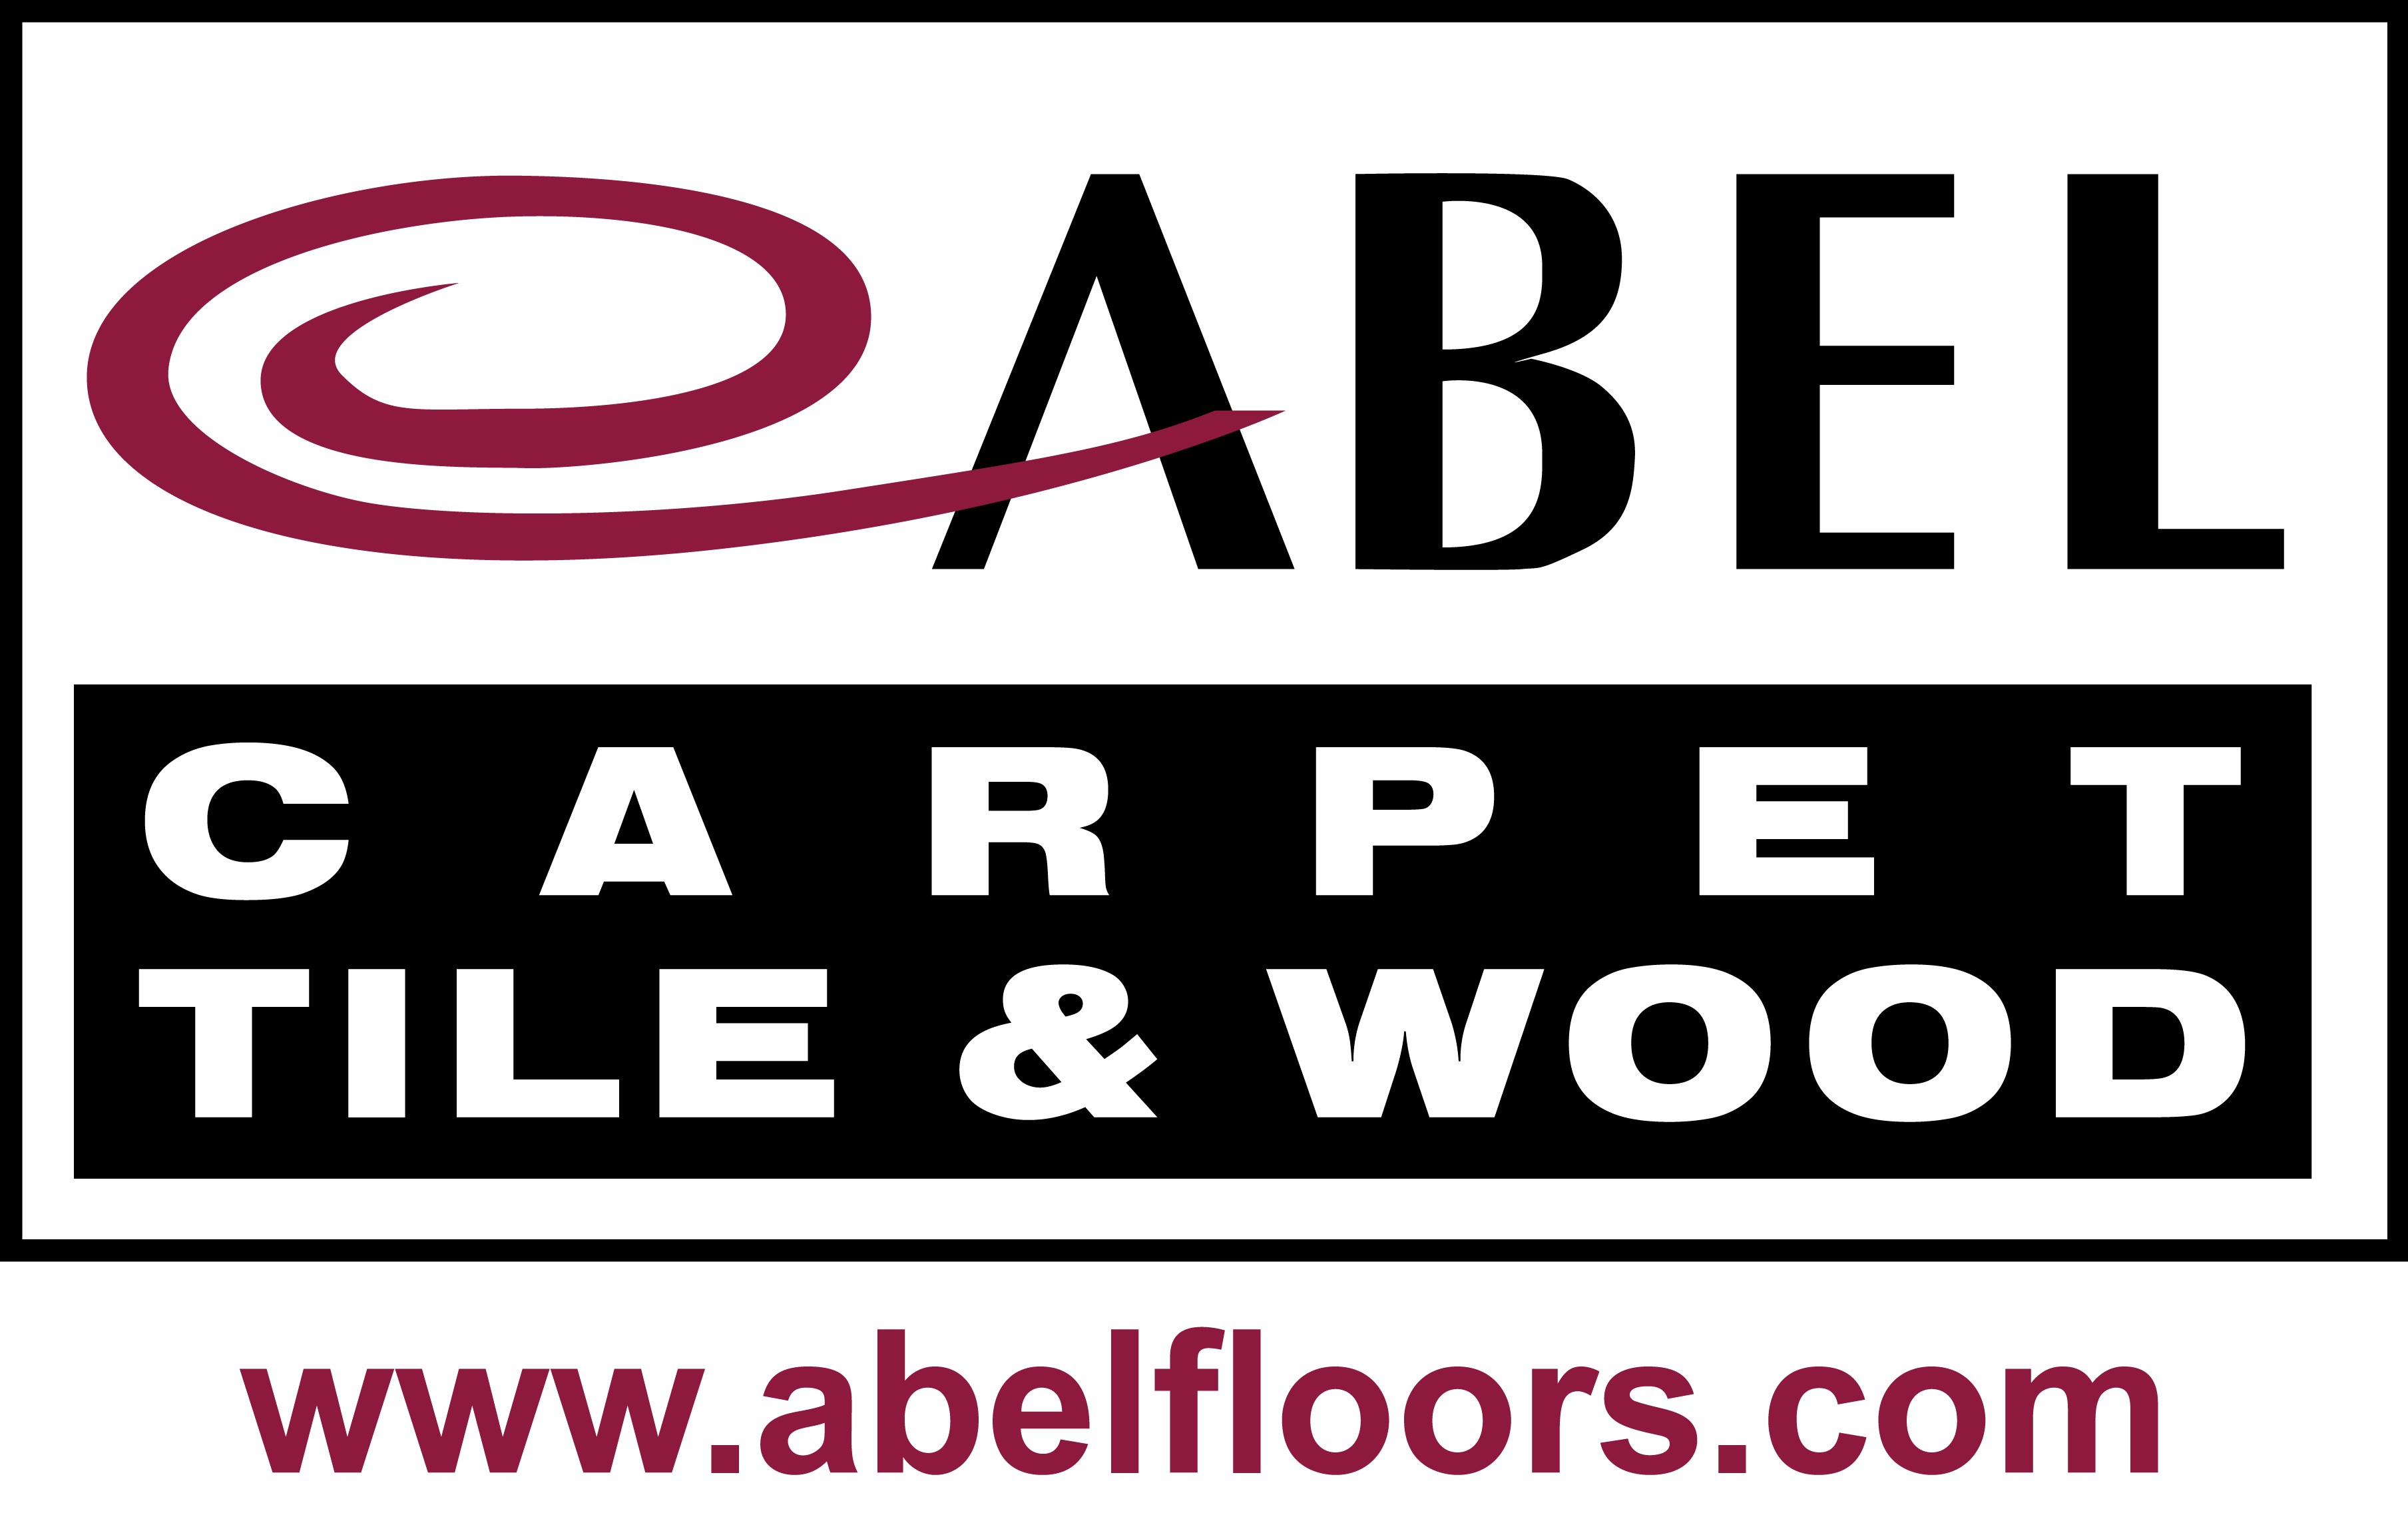 Abel Carpet Tile And Wood - 923 S Ash St, Gilbert, AZ 85233